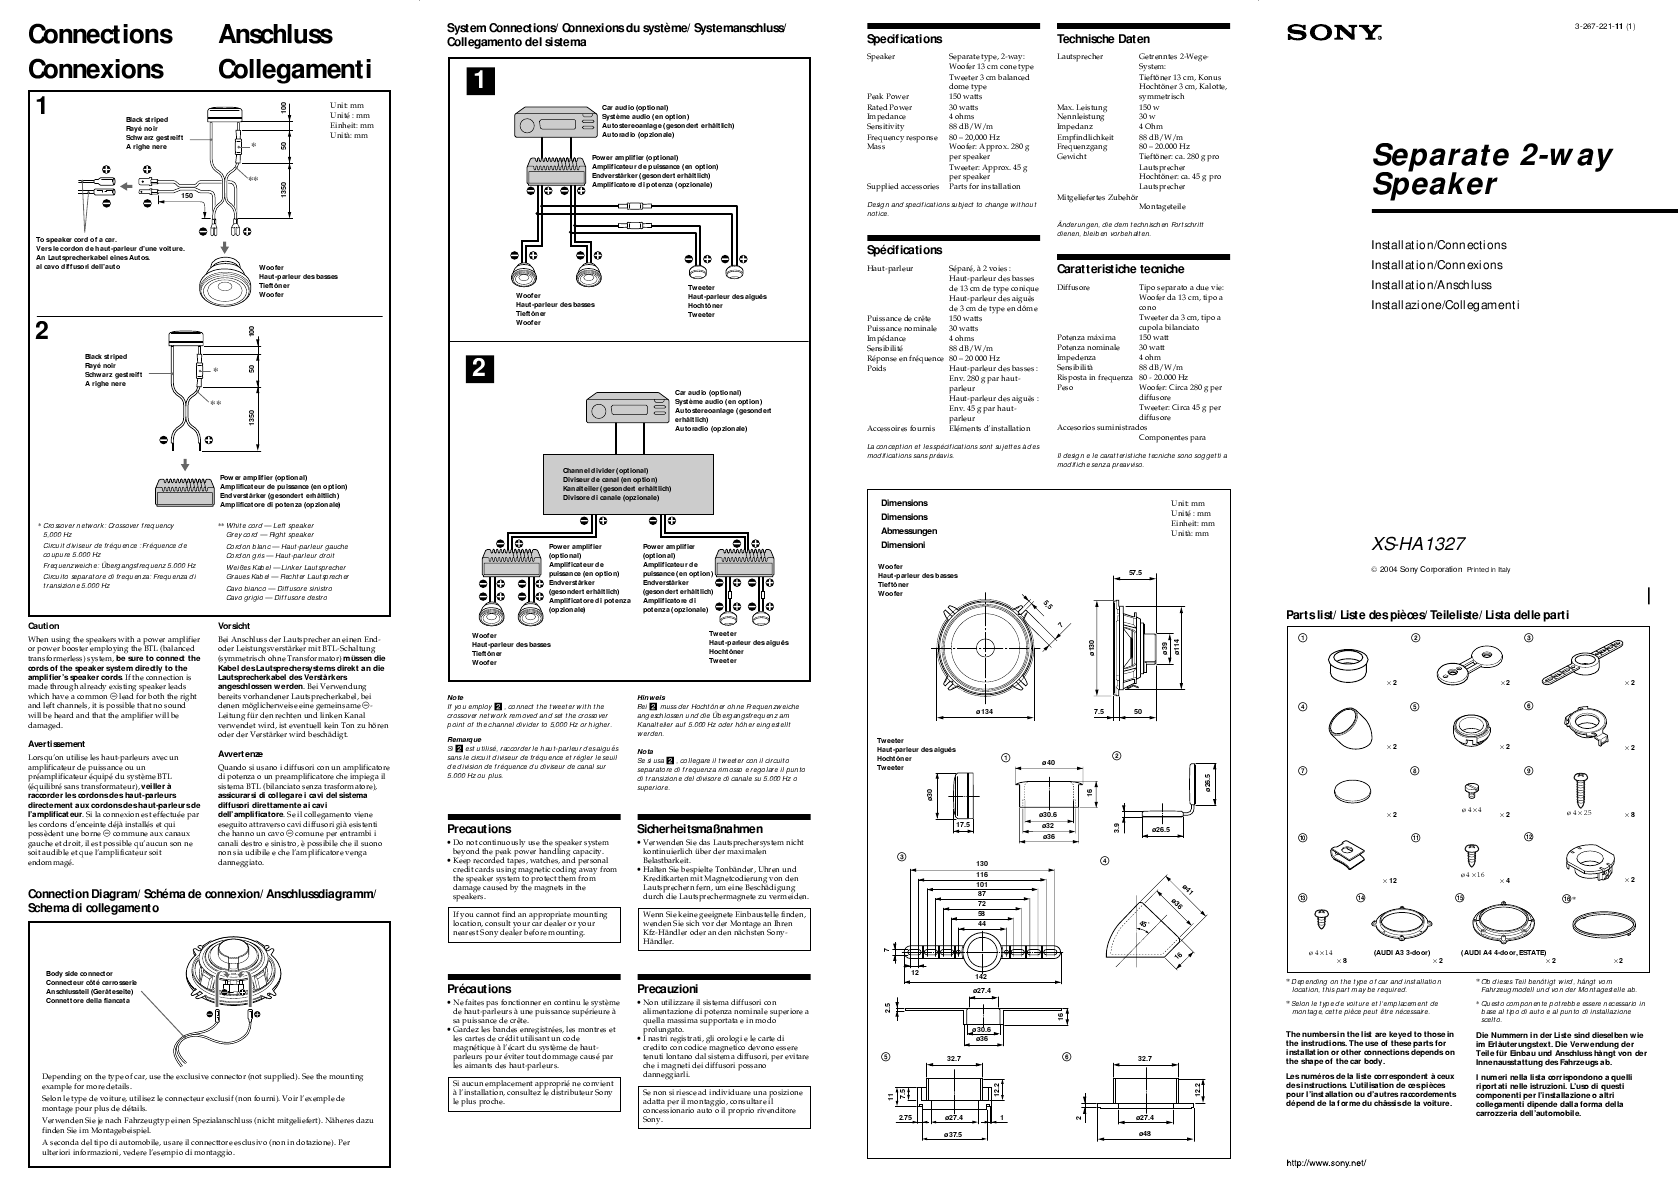 Search Car Speaker User Manuals Jl Audio Wiring Diagram Image Results Sony Xs Ha1327